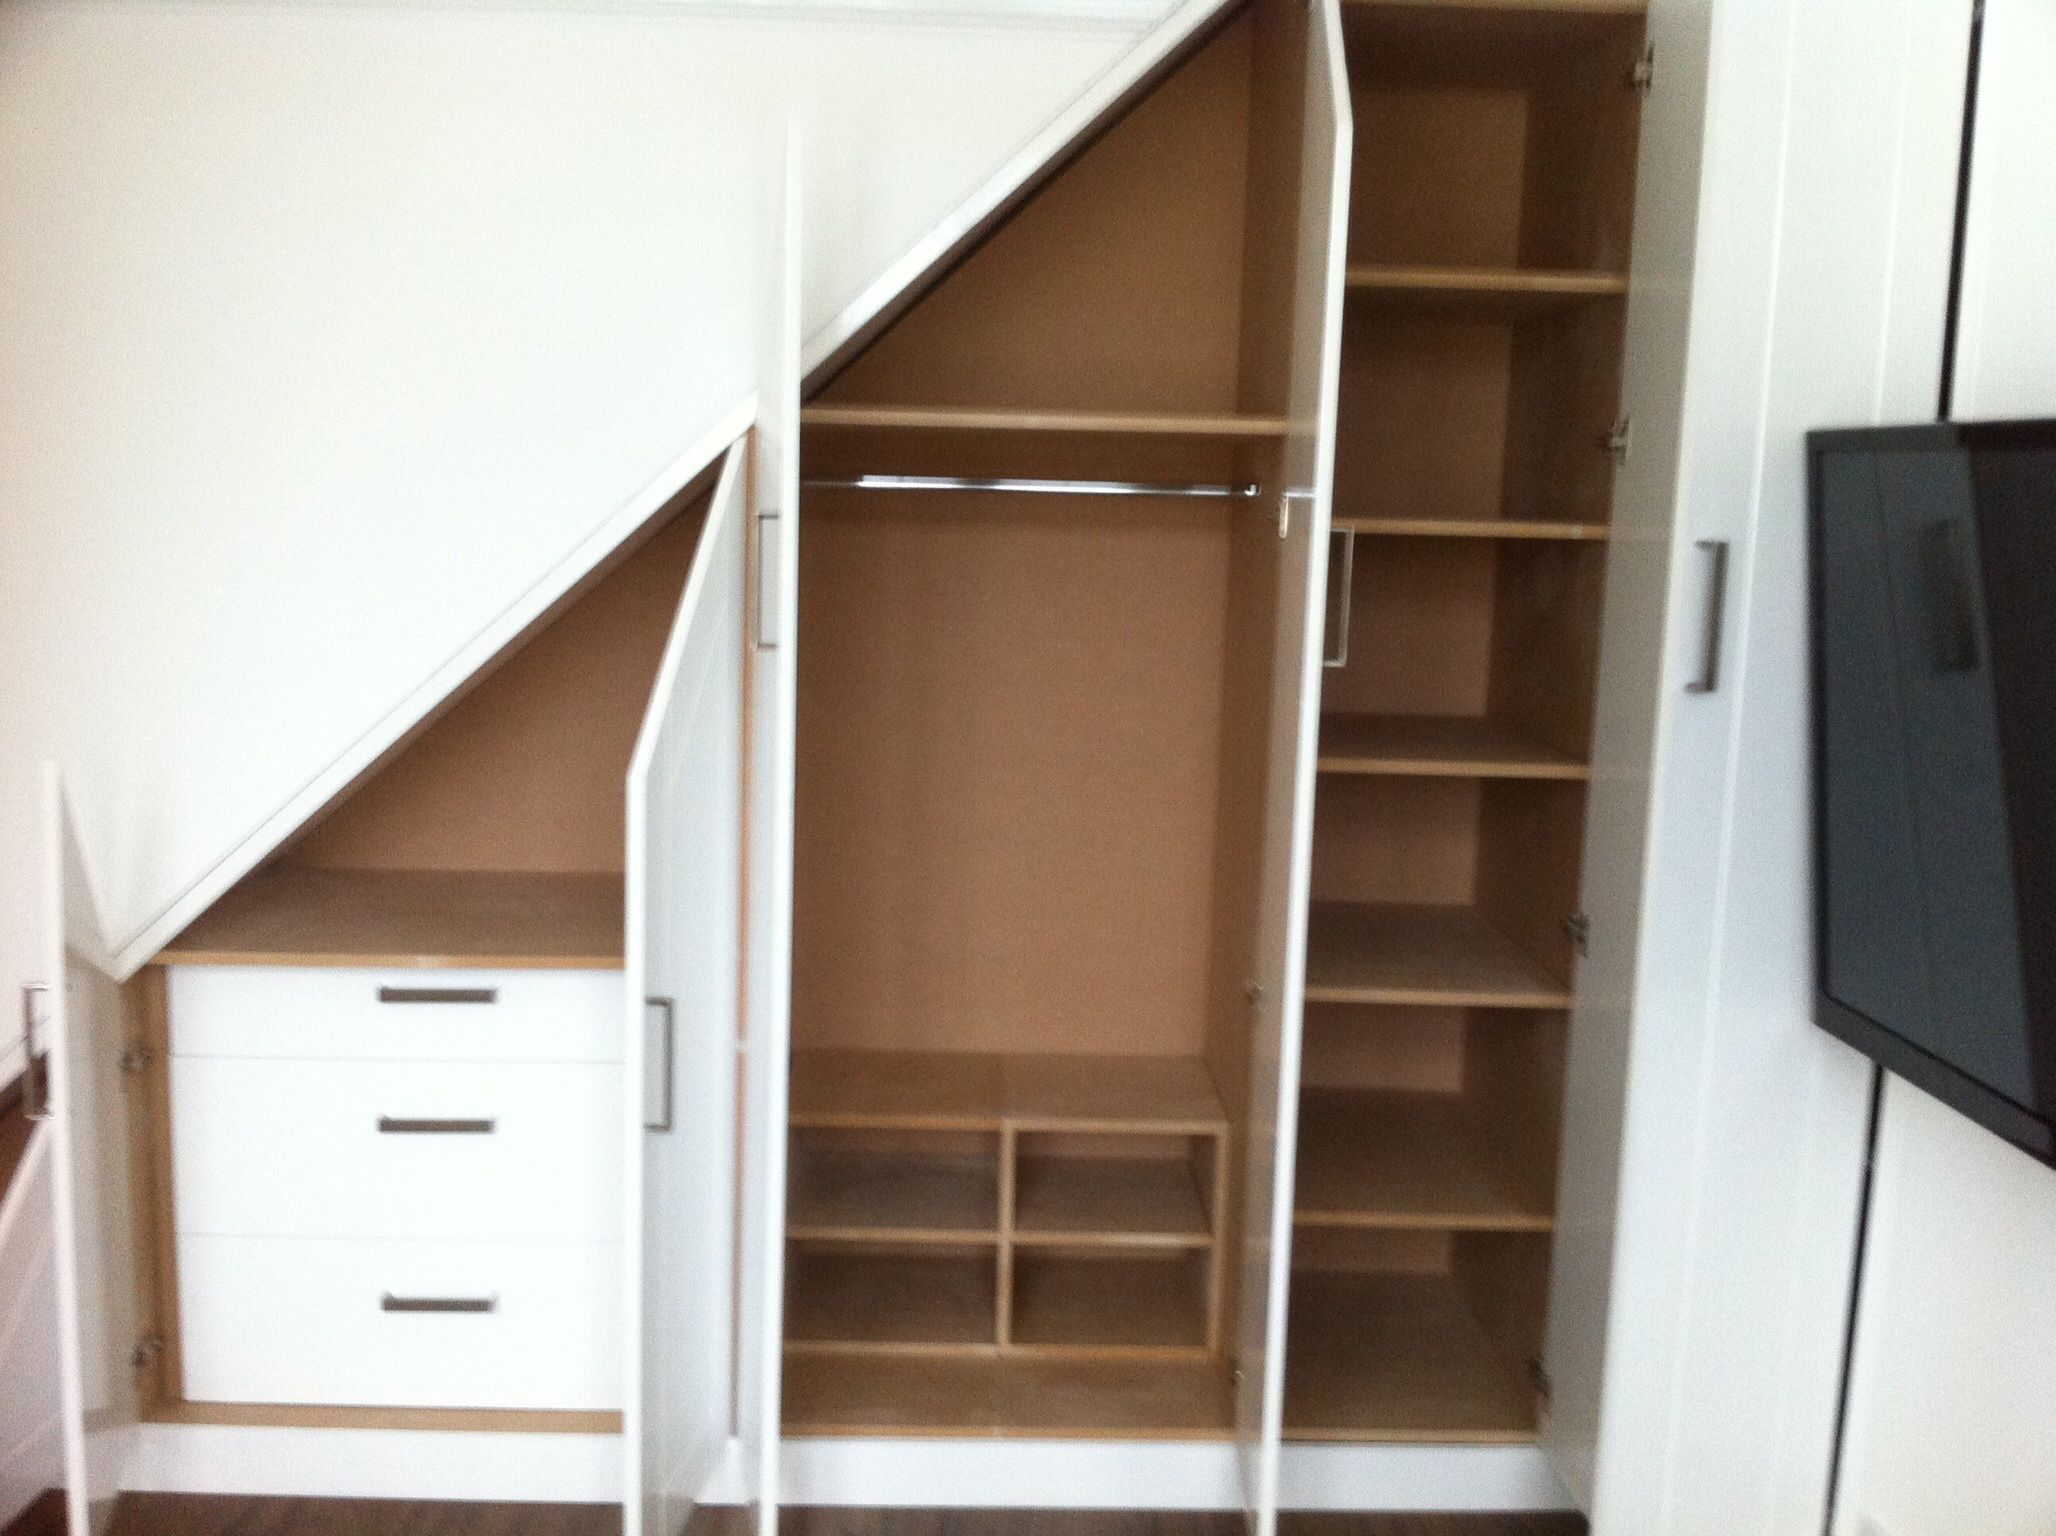 Furniture Design Under Staircase wardrobe measurements to take before designing / modspace.in blog